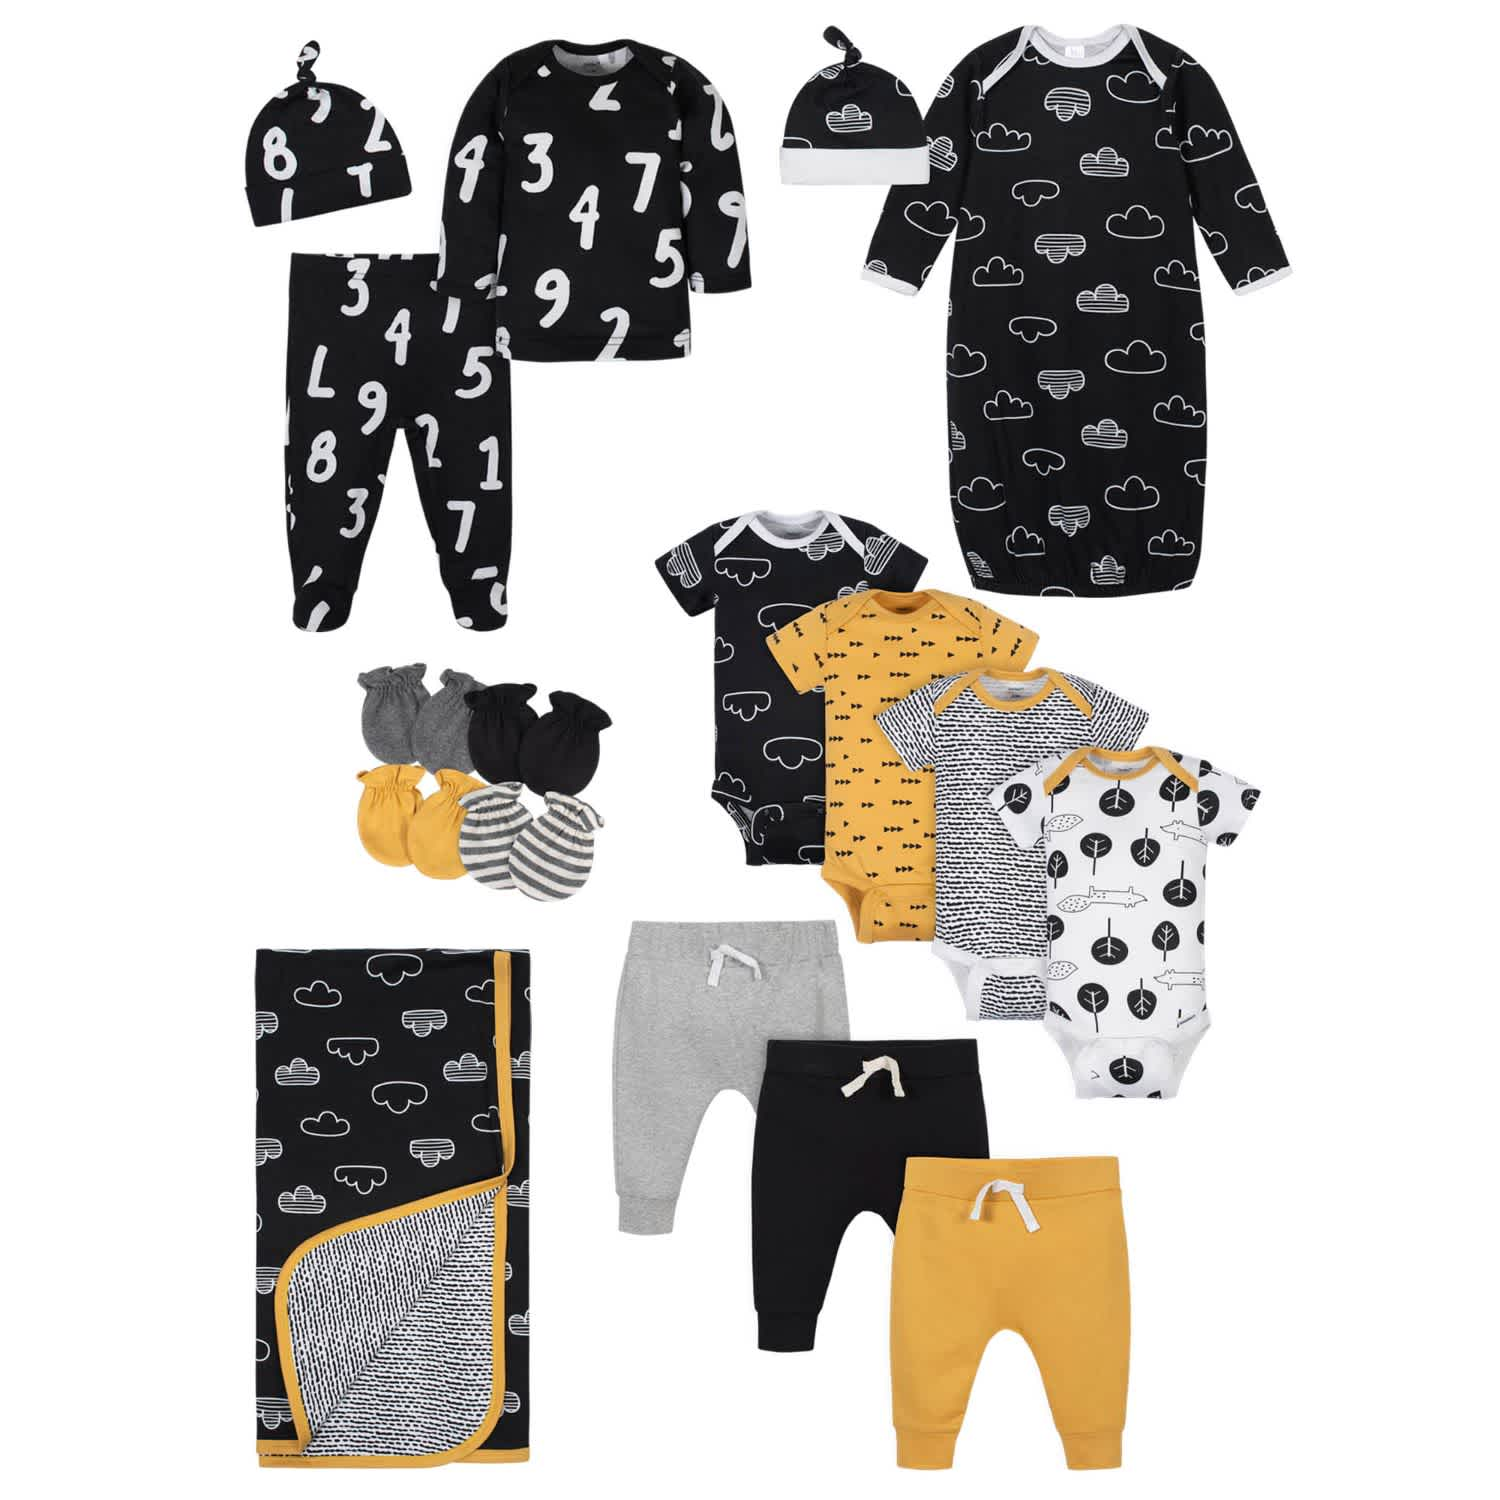 17-Piece Baby Boys' Nature Gift Set